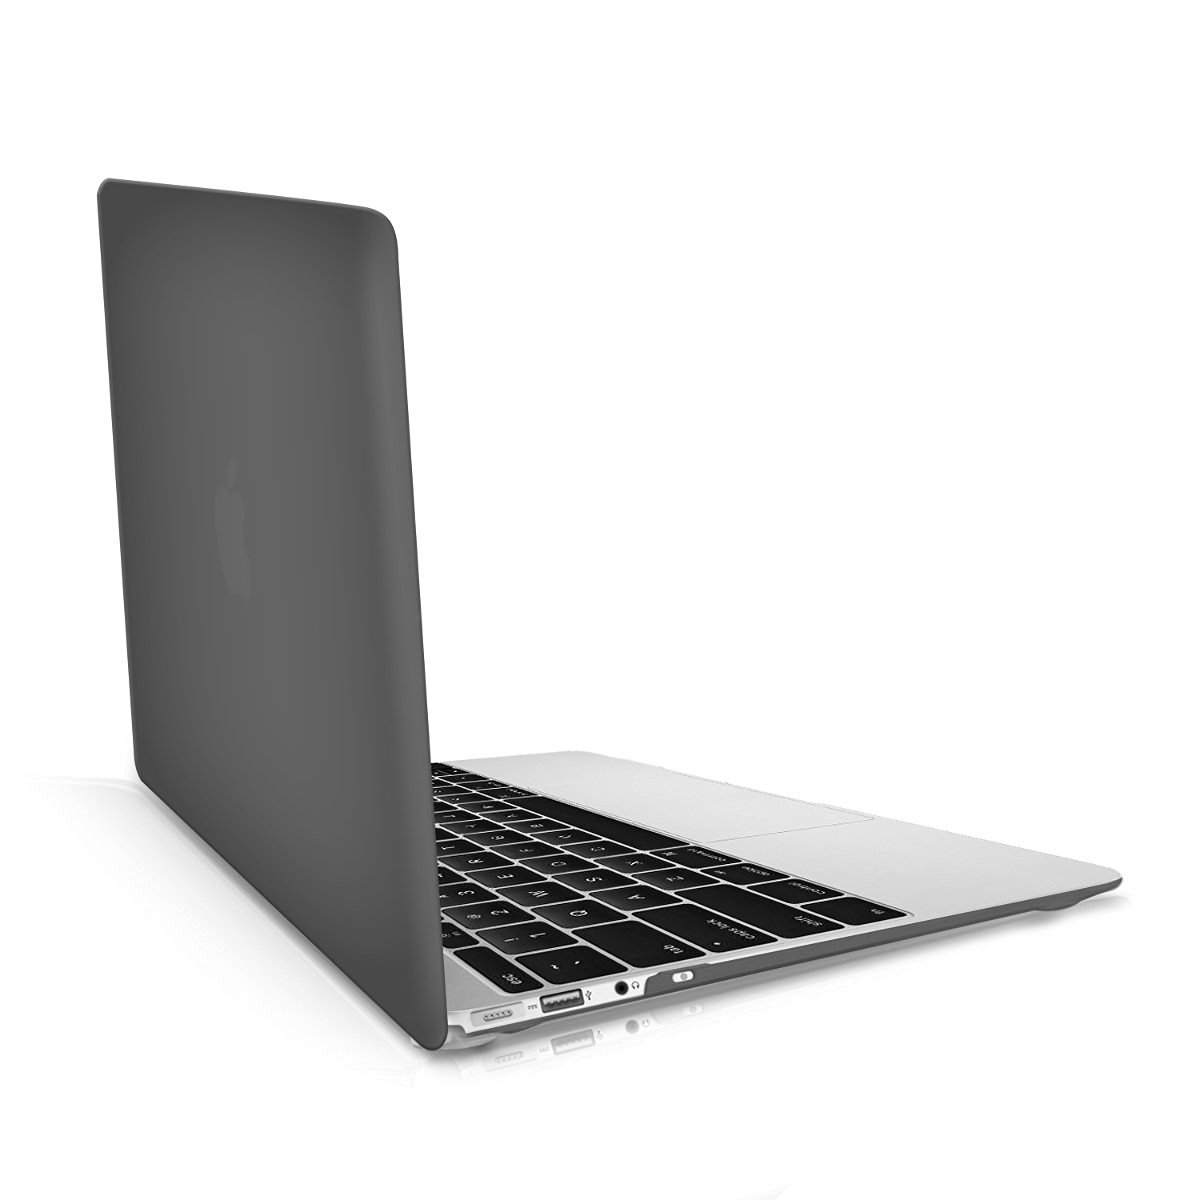 "kwmobile Handy and sturdy rubberised HARD CASE for the > Apple MacBook Air 13"" (versions from mid 2011) < in black"